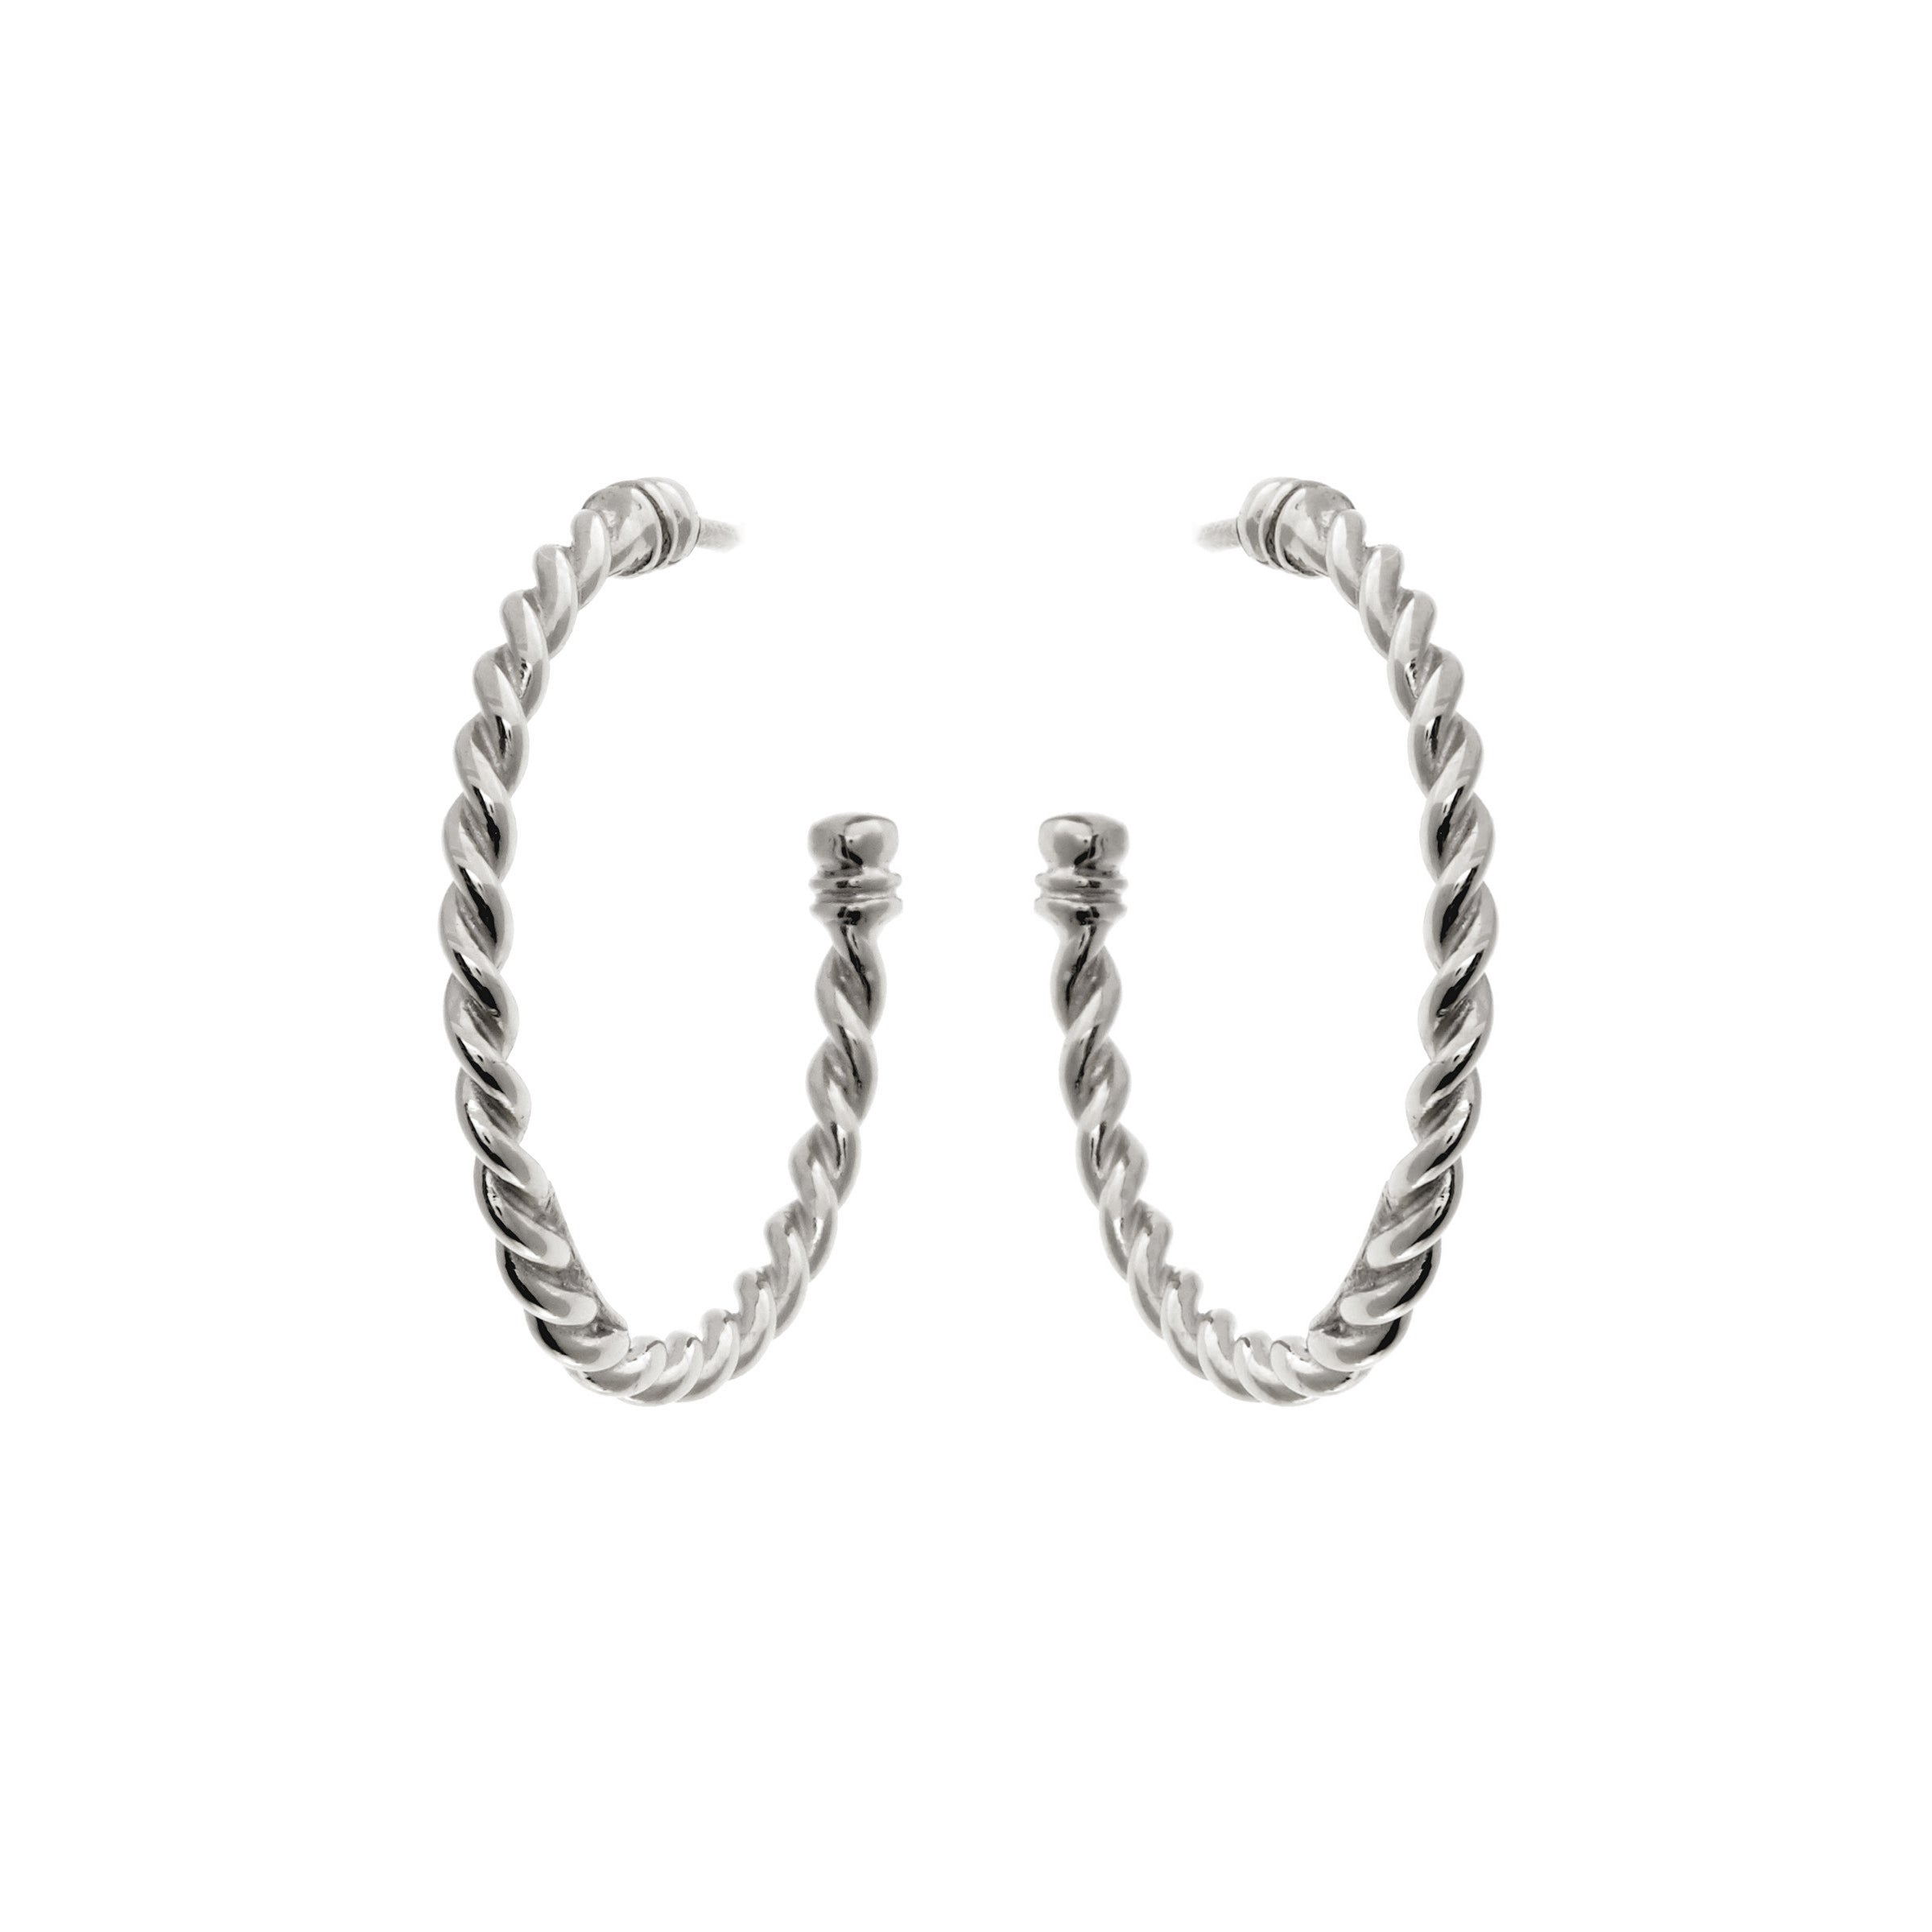 Plait Silver Hoops